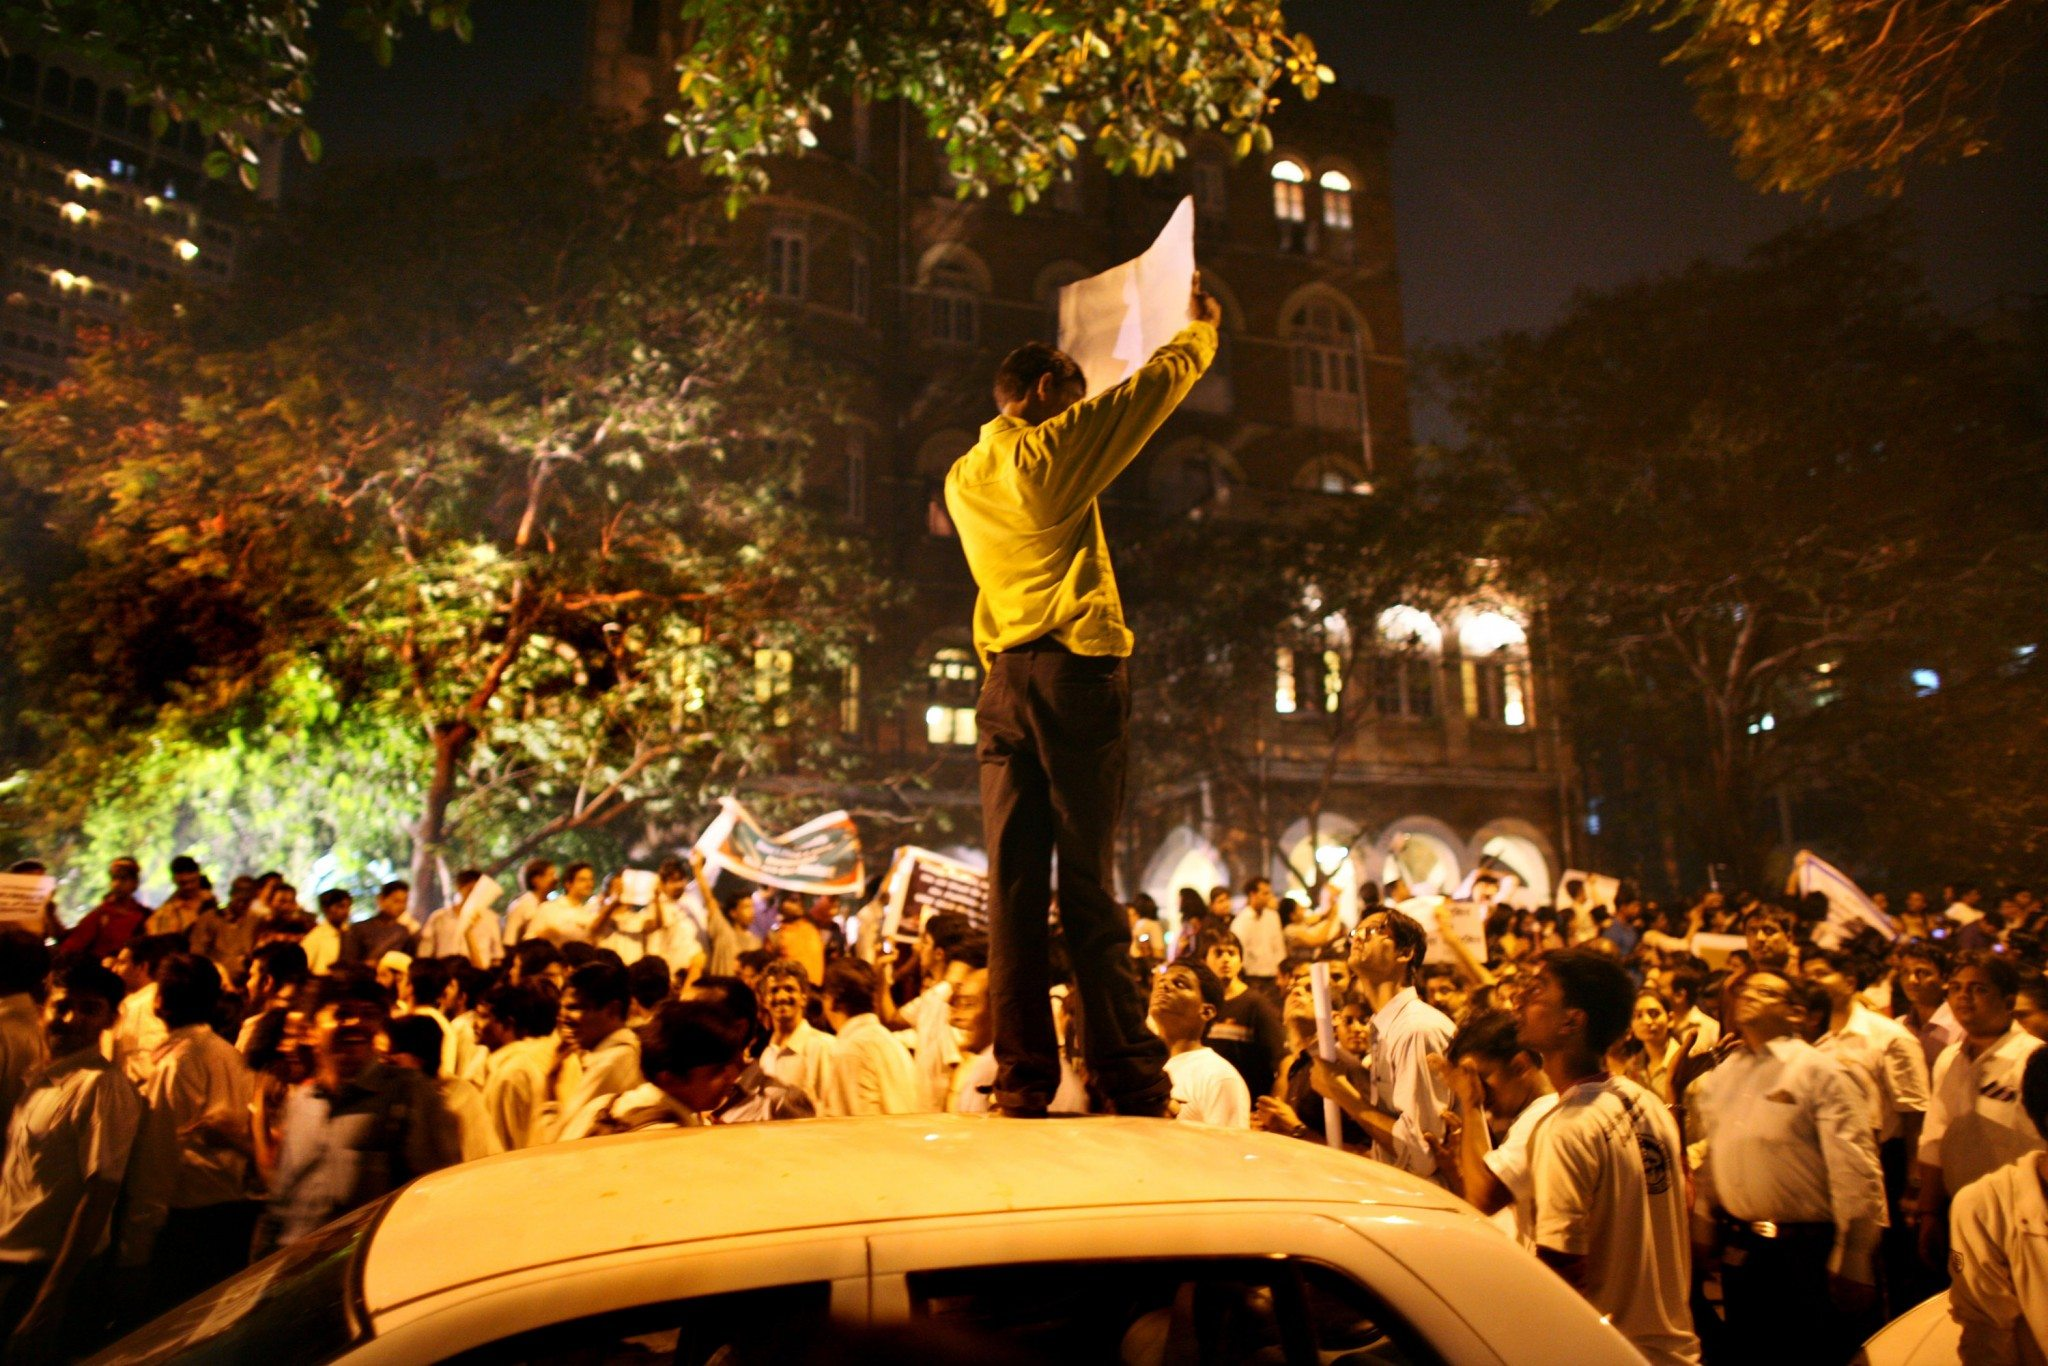 MUMBAI (BOMBAY), INDIA - DECEMBER 03: (ISRAEL OUT) An Indian man holds a sign as he stands on top of a car as thousands of Mumbaikars take part in a mass demonstration march following last weeks series of terrorist attacks on the city, near the Taj Mahal Palace & Tower Hotel, on December, 03, 2008 in Mumbai, India. Two bombs were discovered and defused earlier today by Mumbai police at a train station, the Chhatrapati Shivaji Terminus, which was one of the locations attacked by the terrorists. The attacks left almost 200 hundred dead and injured over 300 people. (Photo by Uriel Sinai/Getty Images)